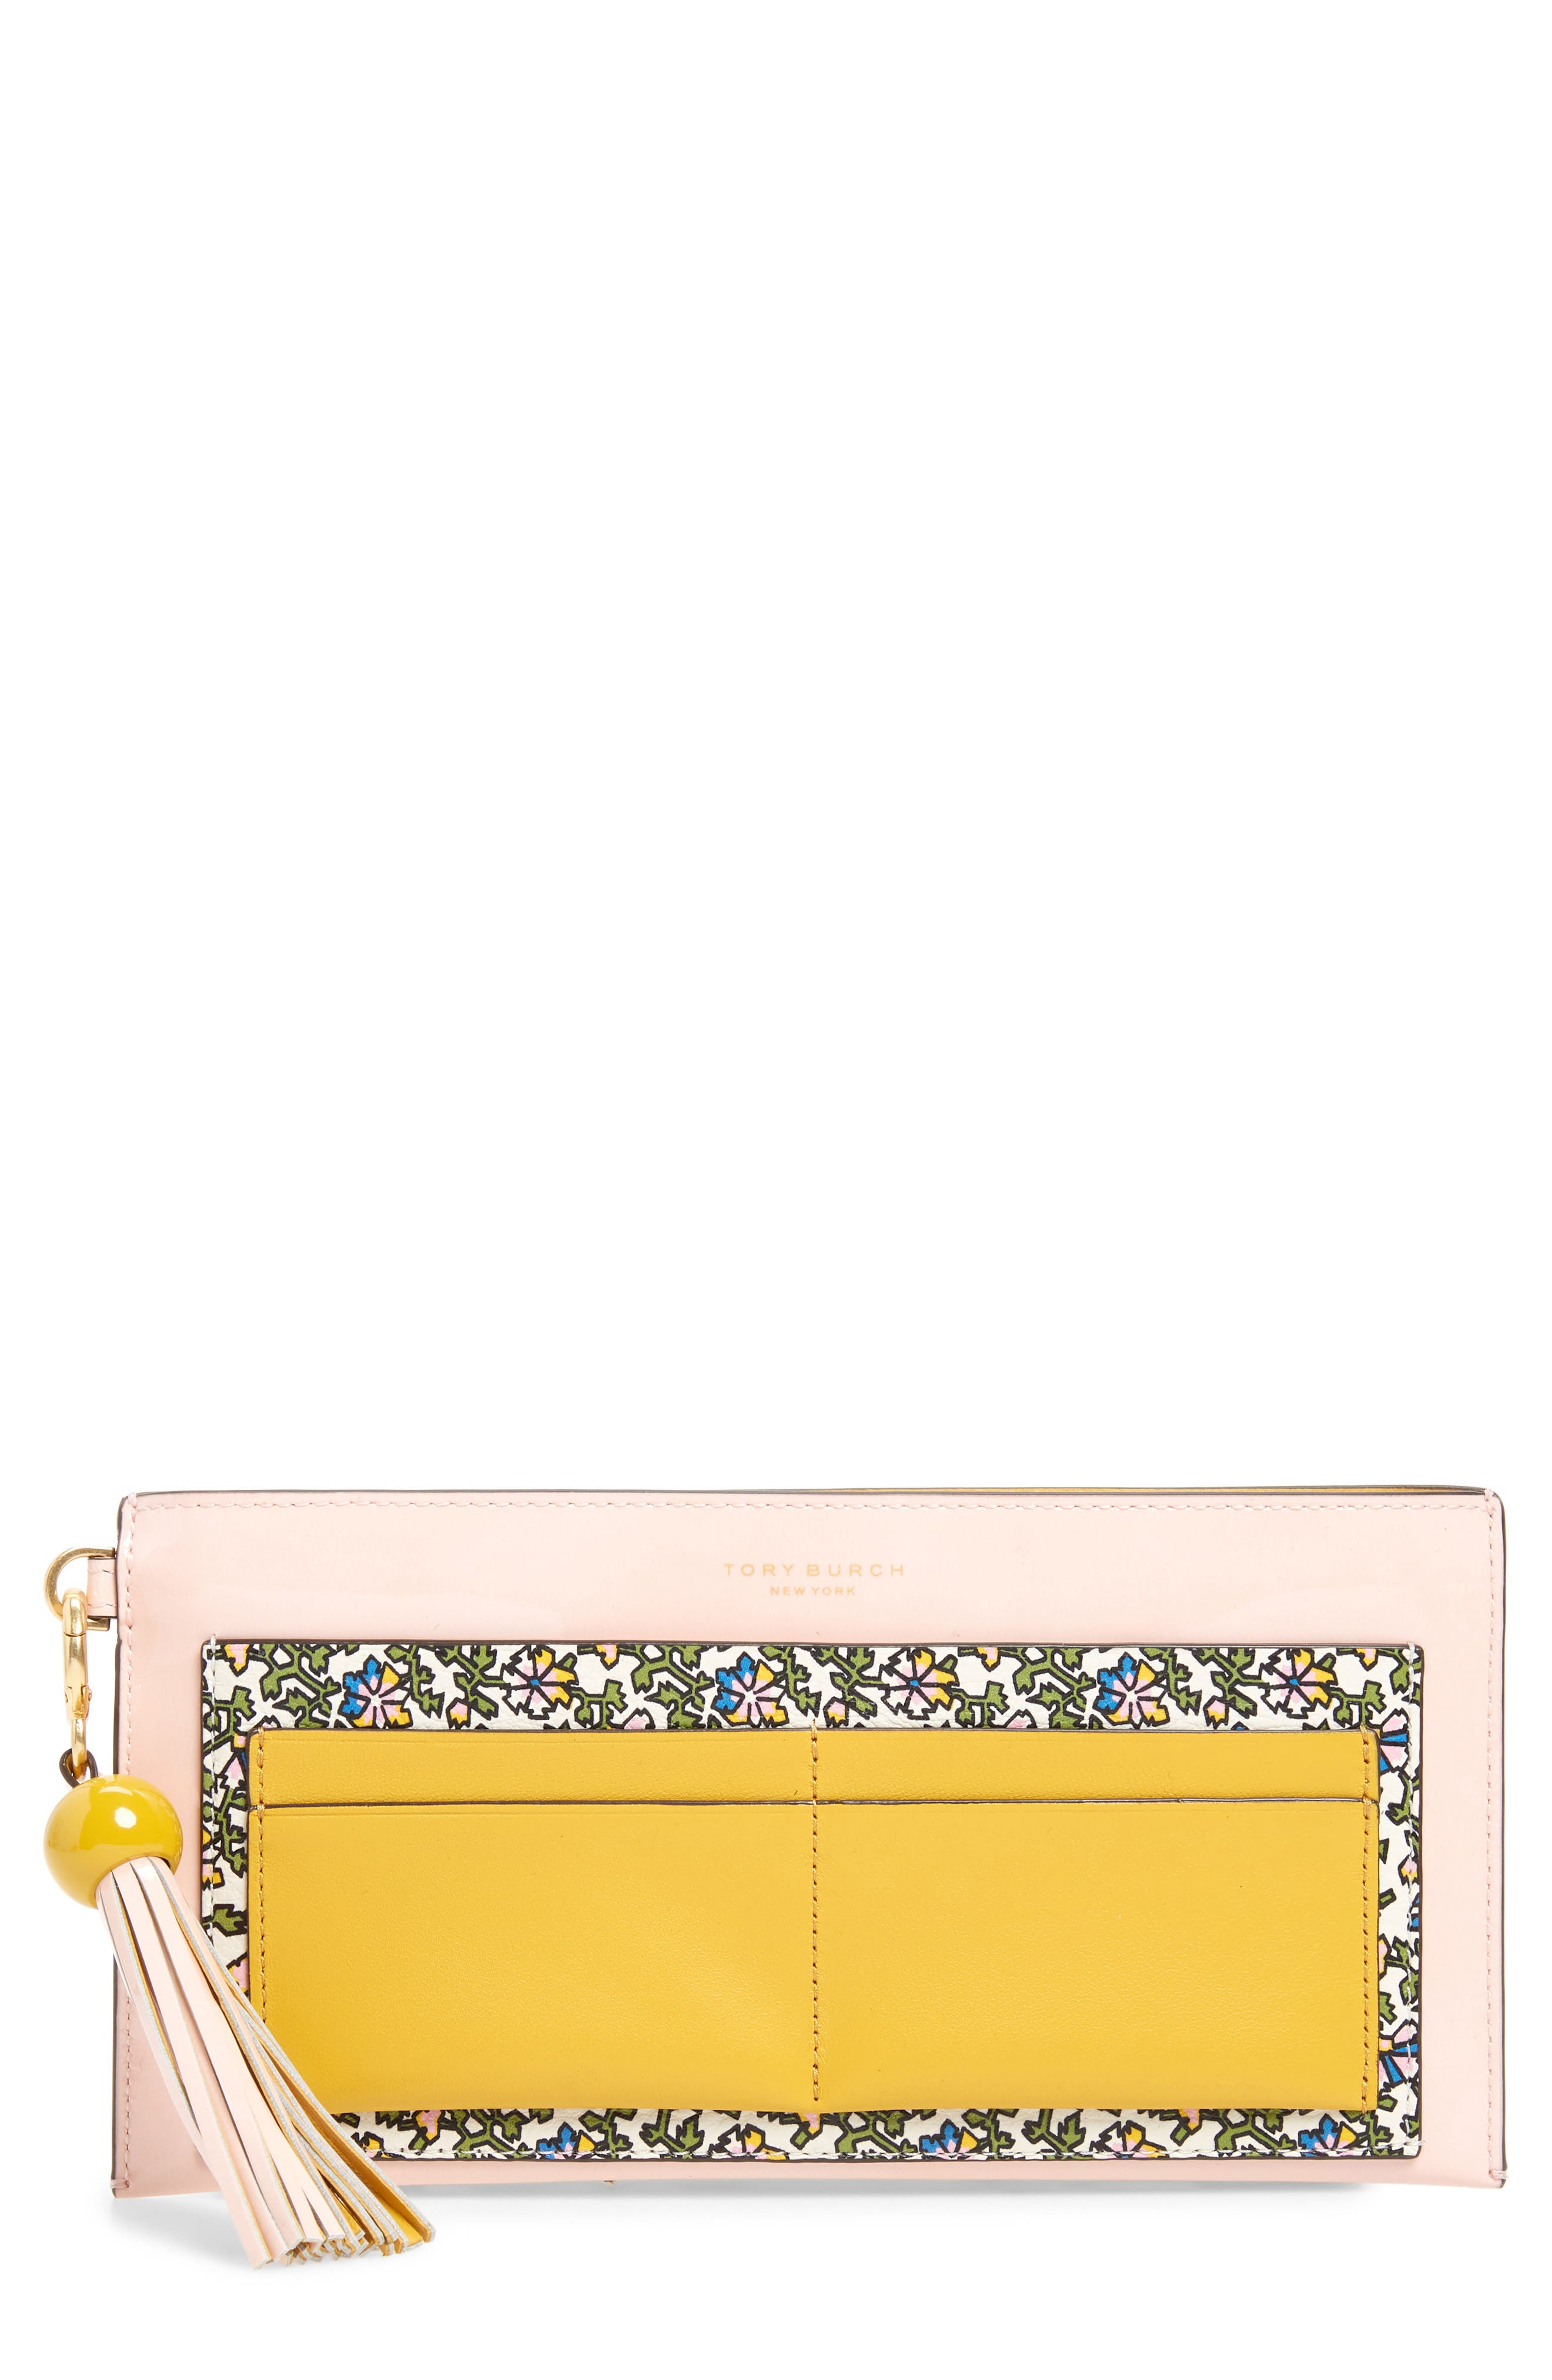 Colorblock Leather Wallet,                         Main,                         color, Ivory Wild Pansy